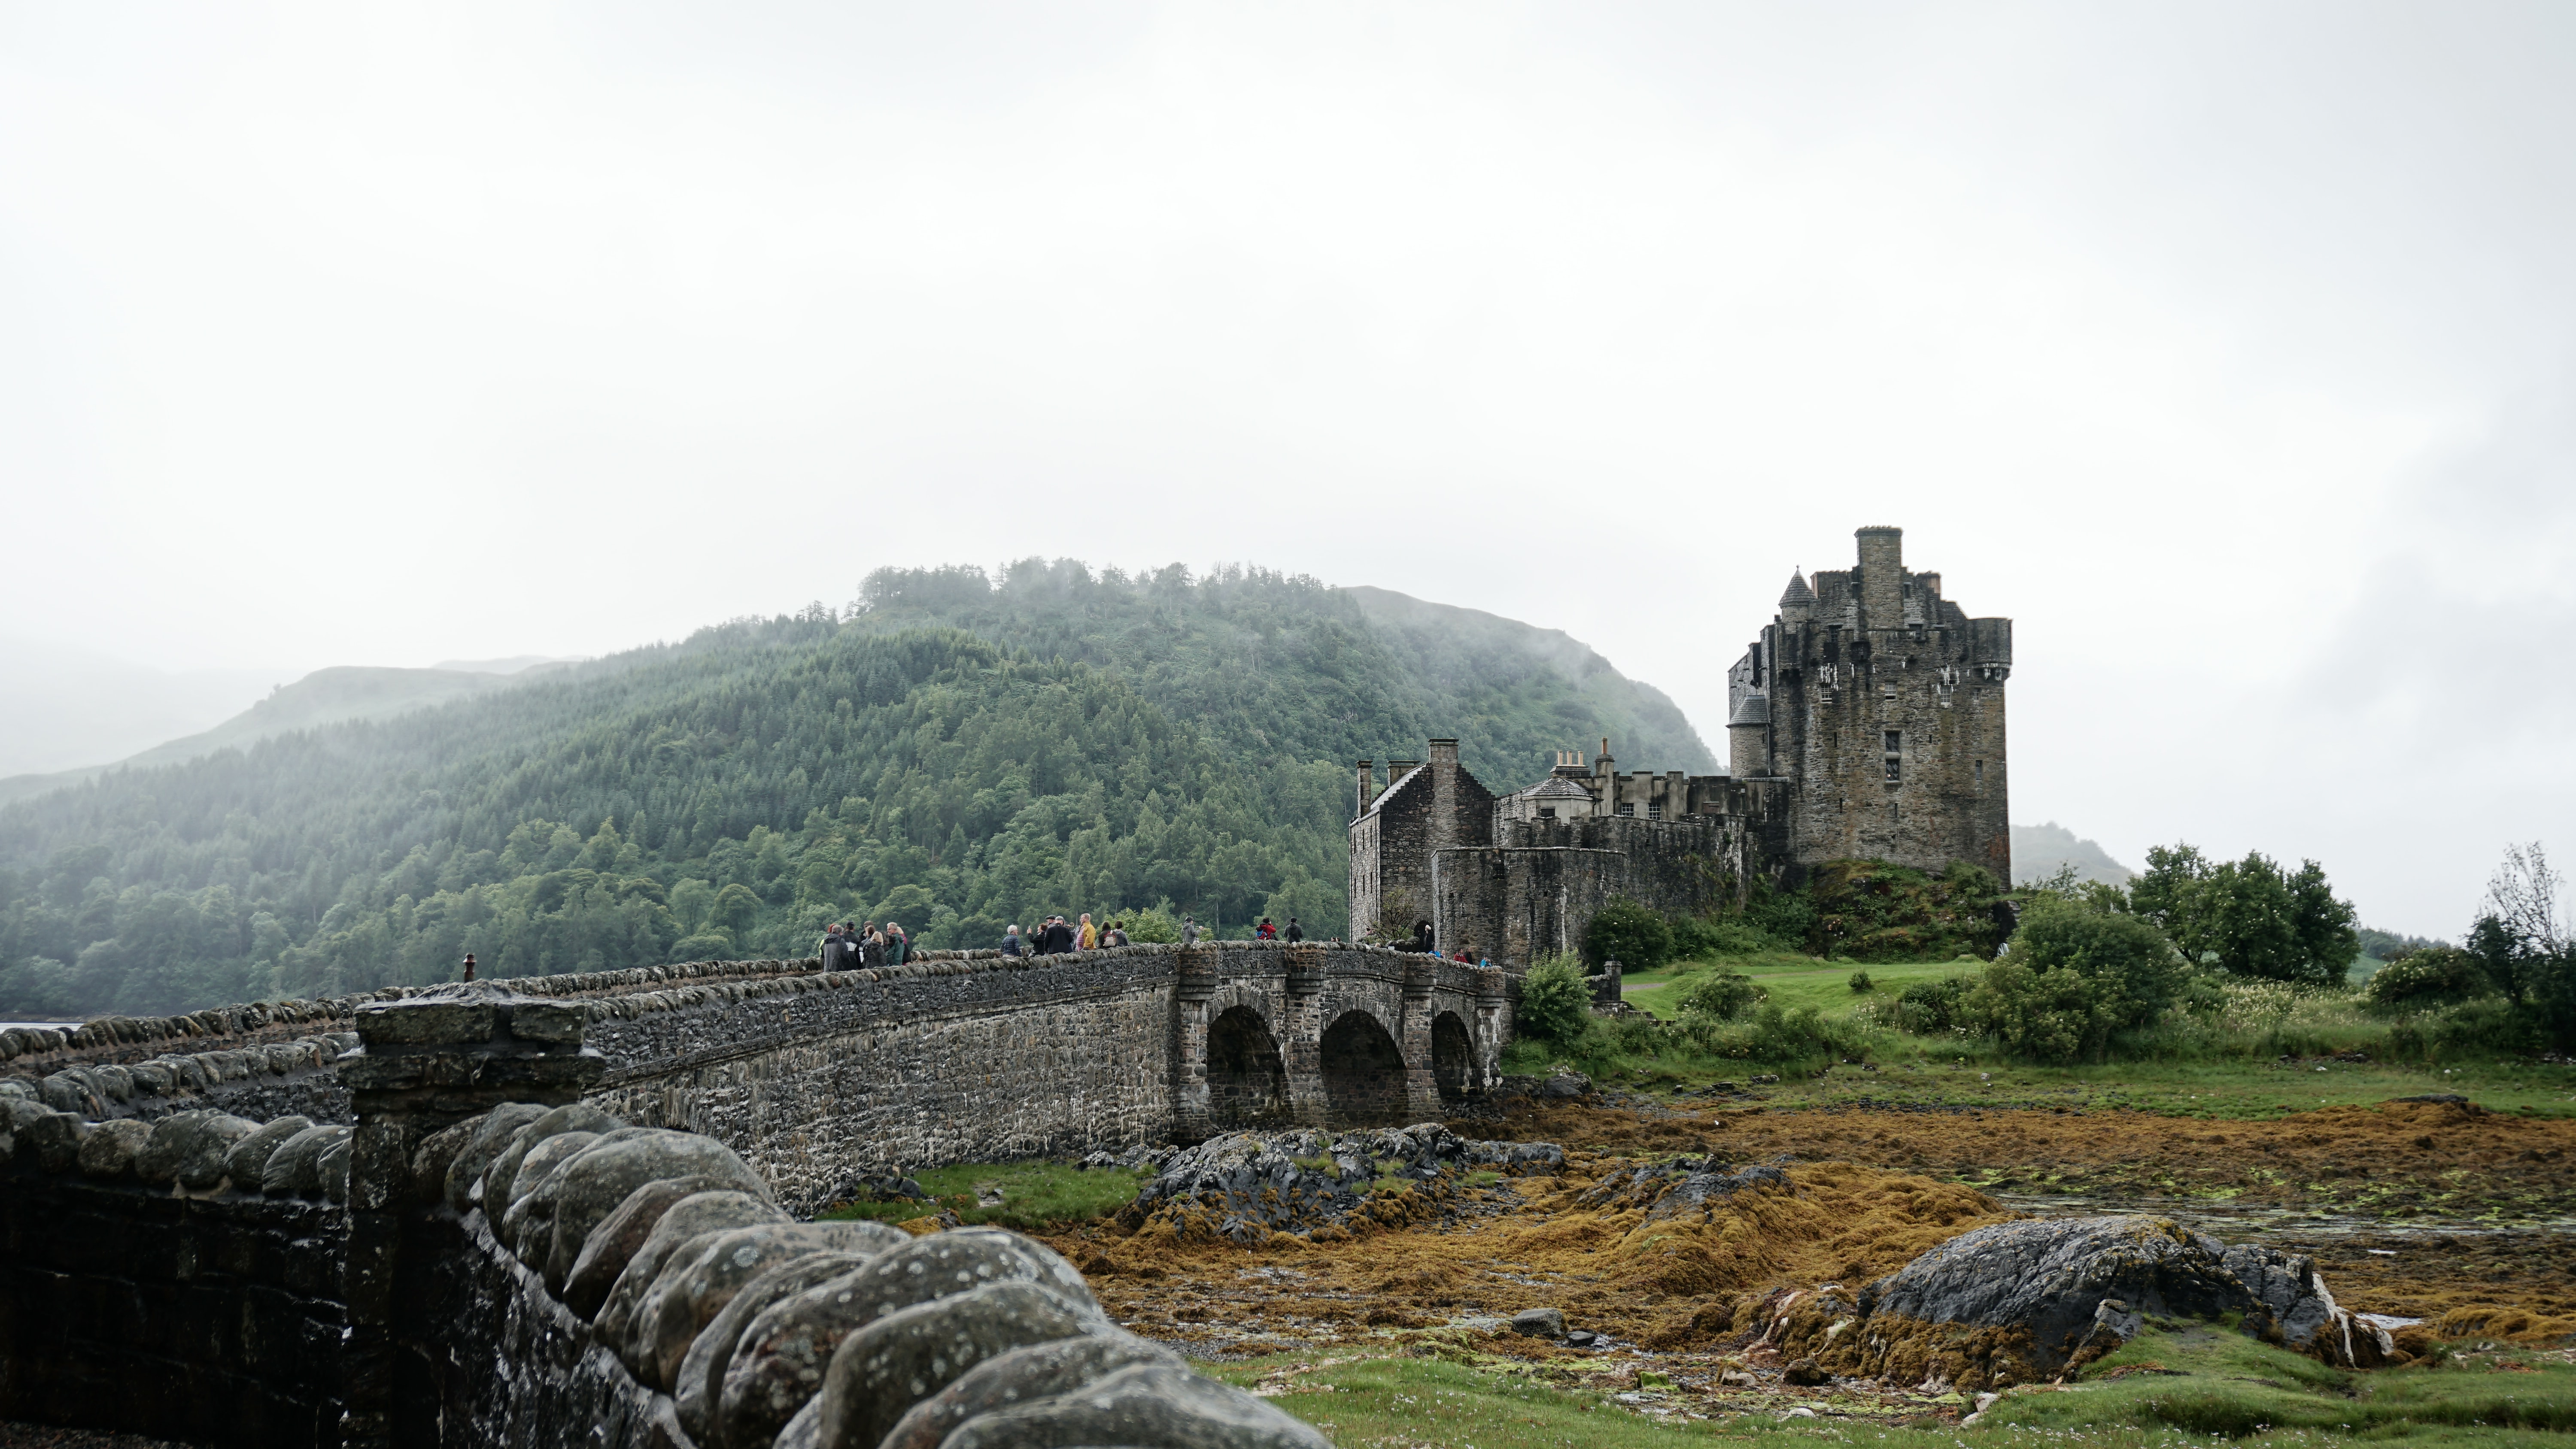 People walking on the walls of a medieval castle in Scotland